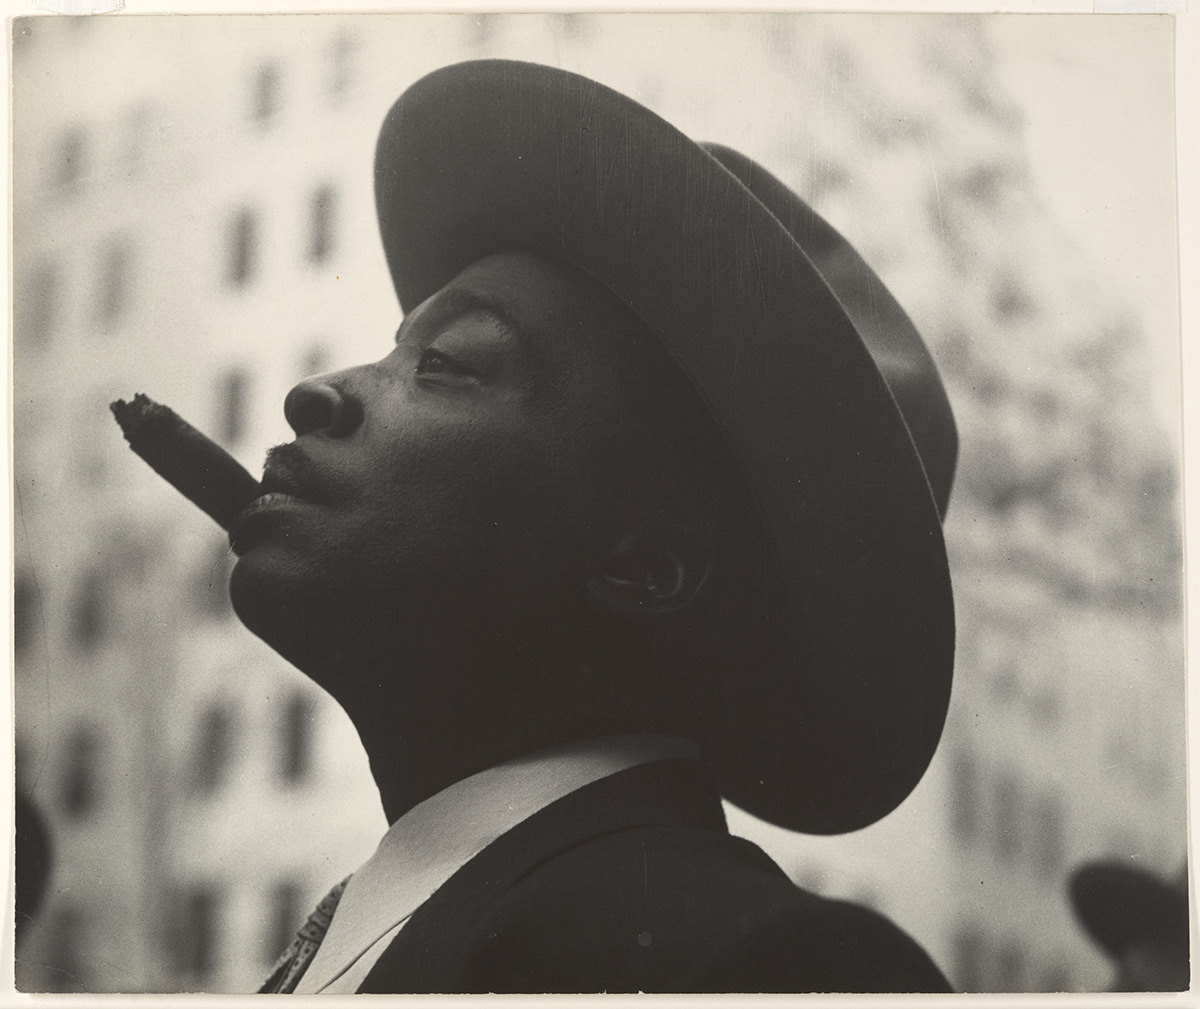 Head of Man with Hat and Cigar / Leon Levinstein / 1960